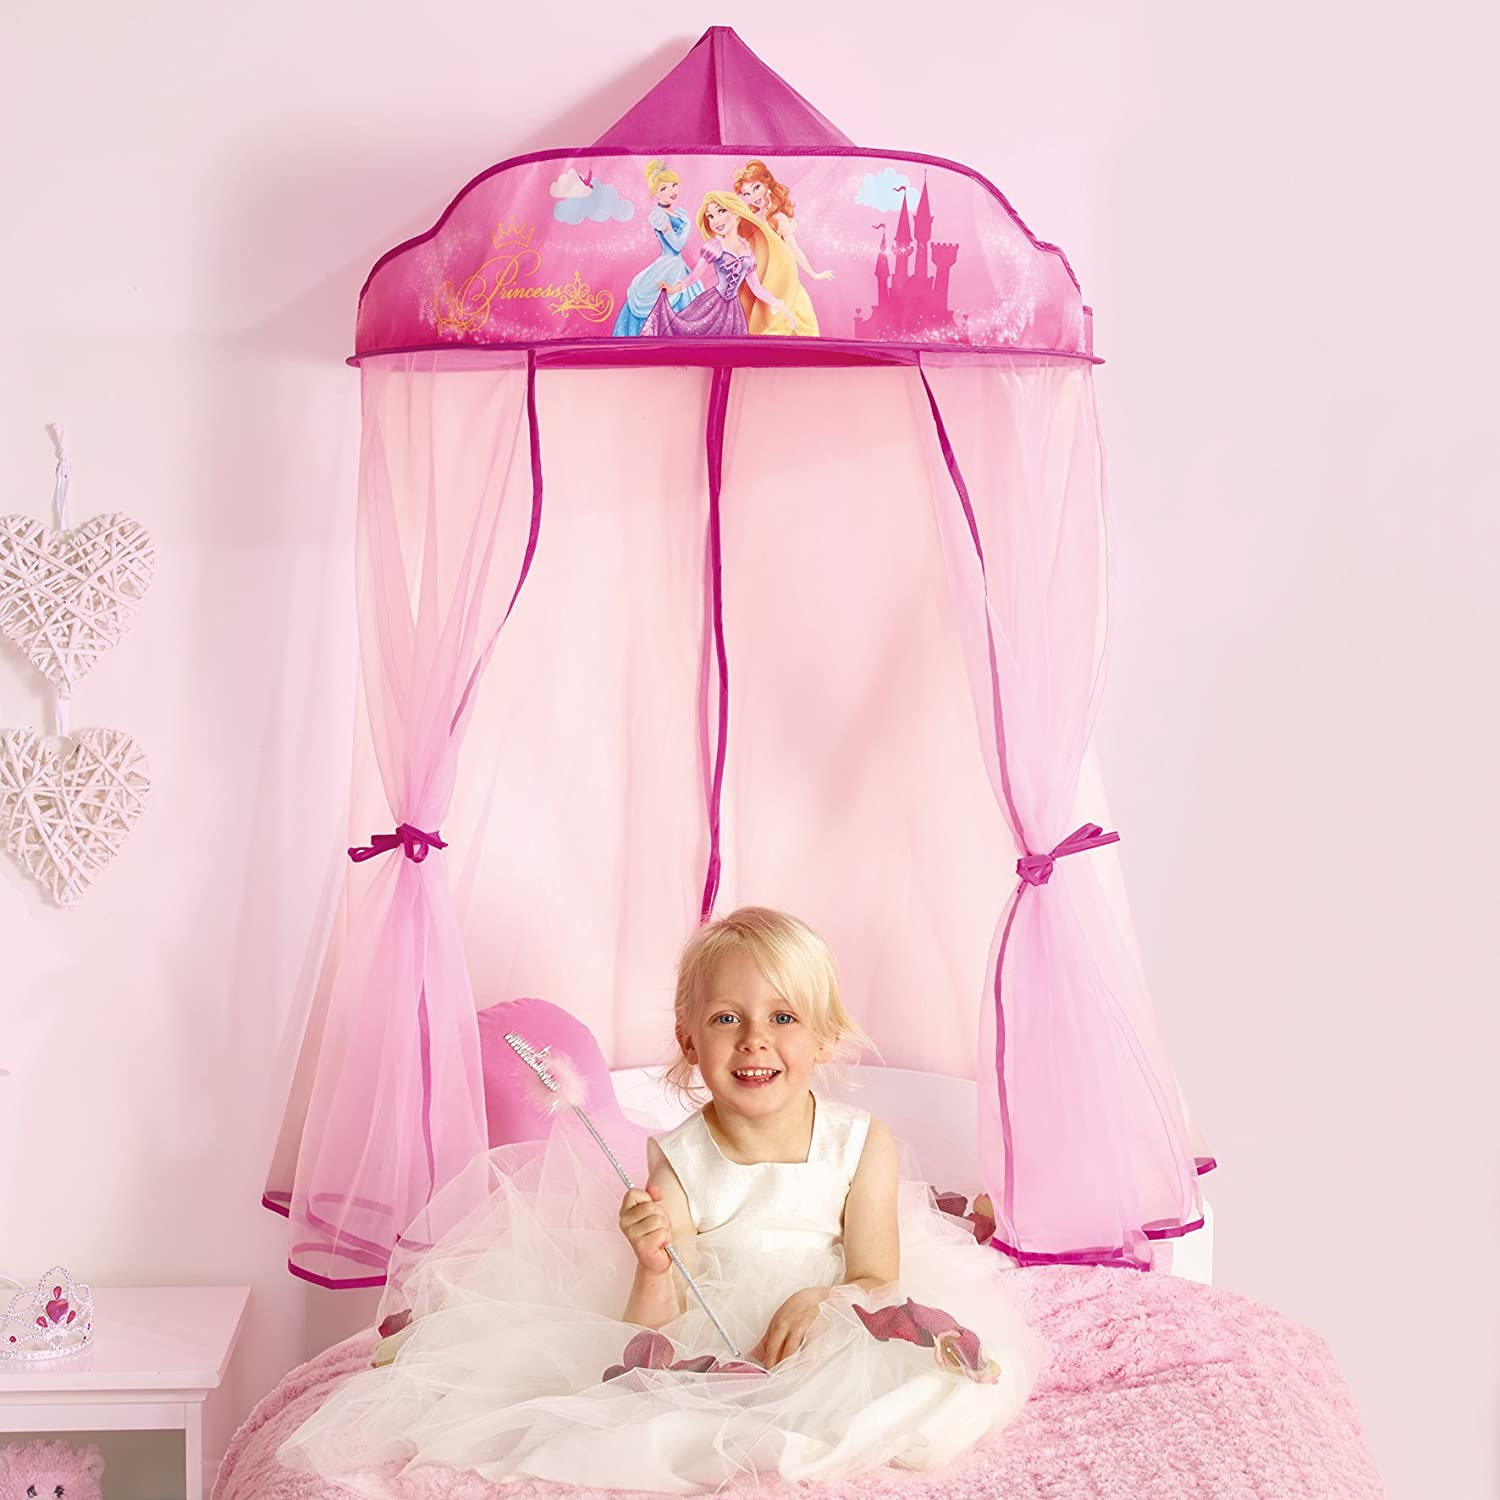 disney princess cinderella canopy for bed girl toddler play tent pink purple new ebay. Black Bedroom Furniture Sets. Home Design Ideas